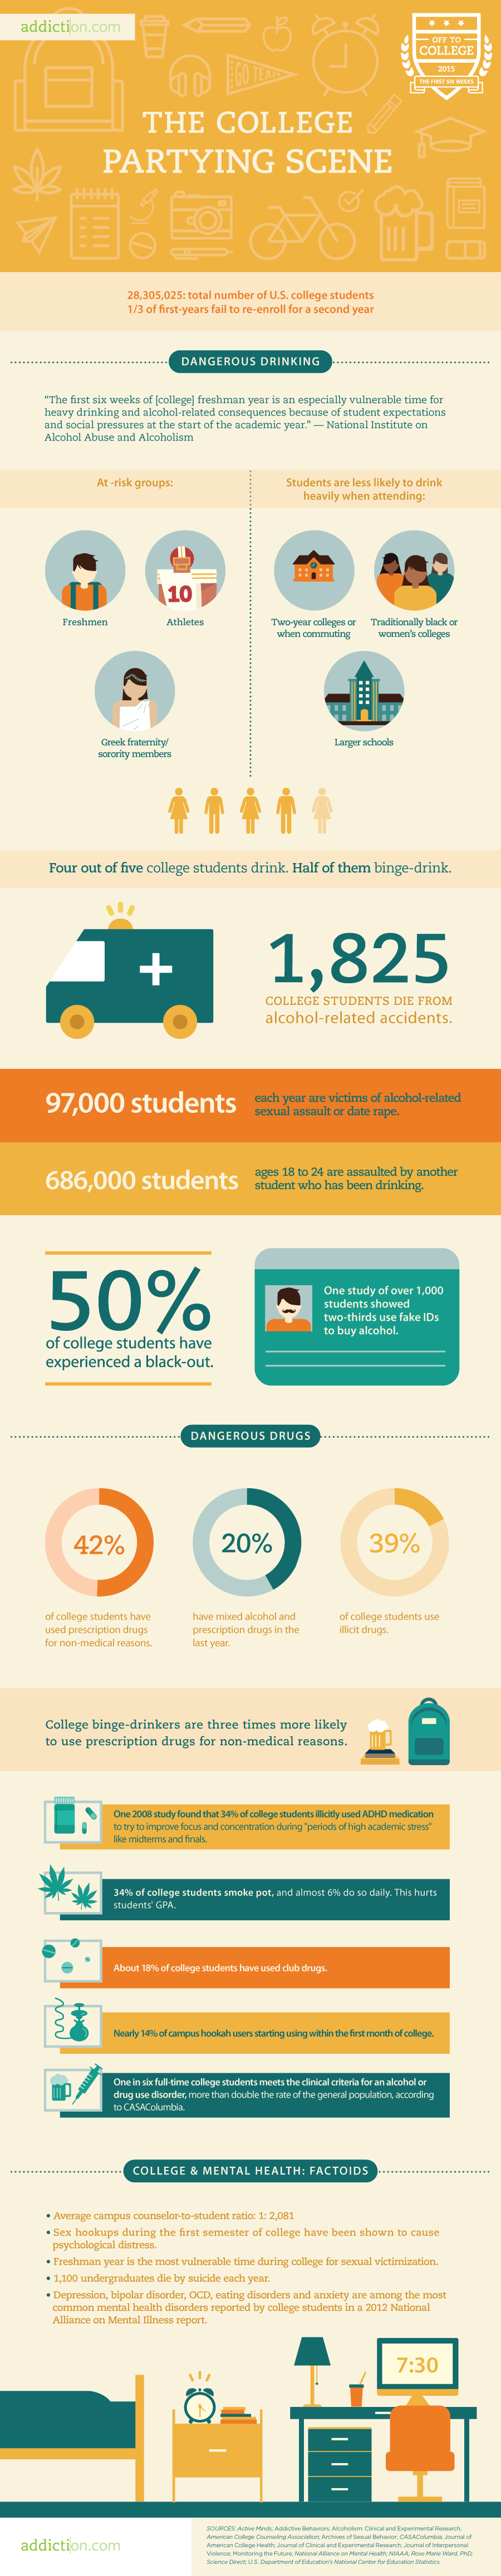 College Partying: Dangerous Drinking and Drug Use | Vantage Point Recovery